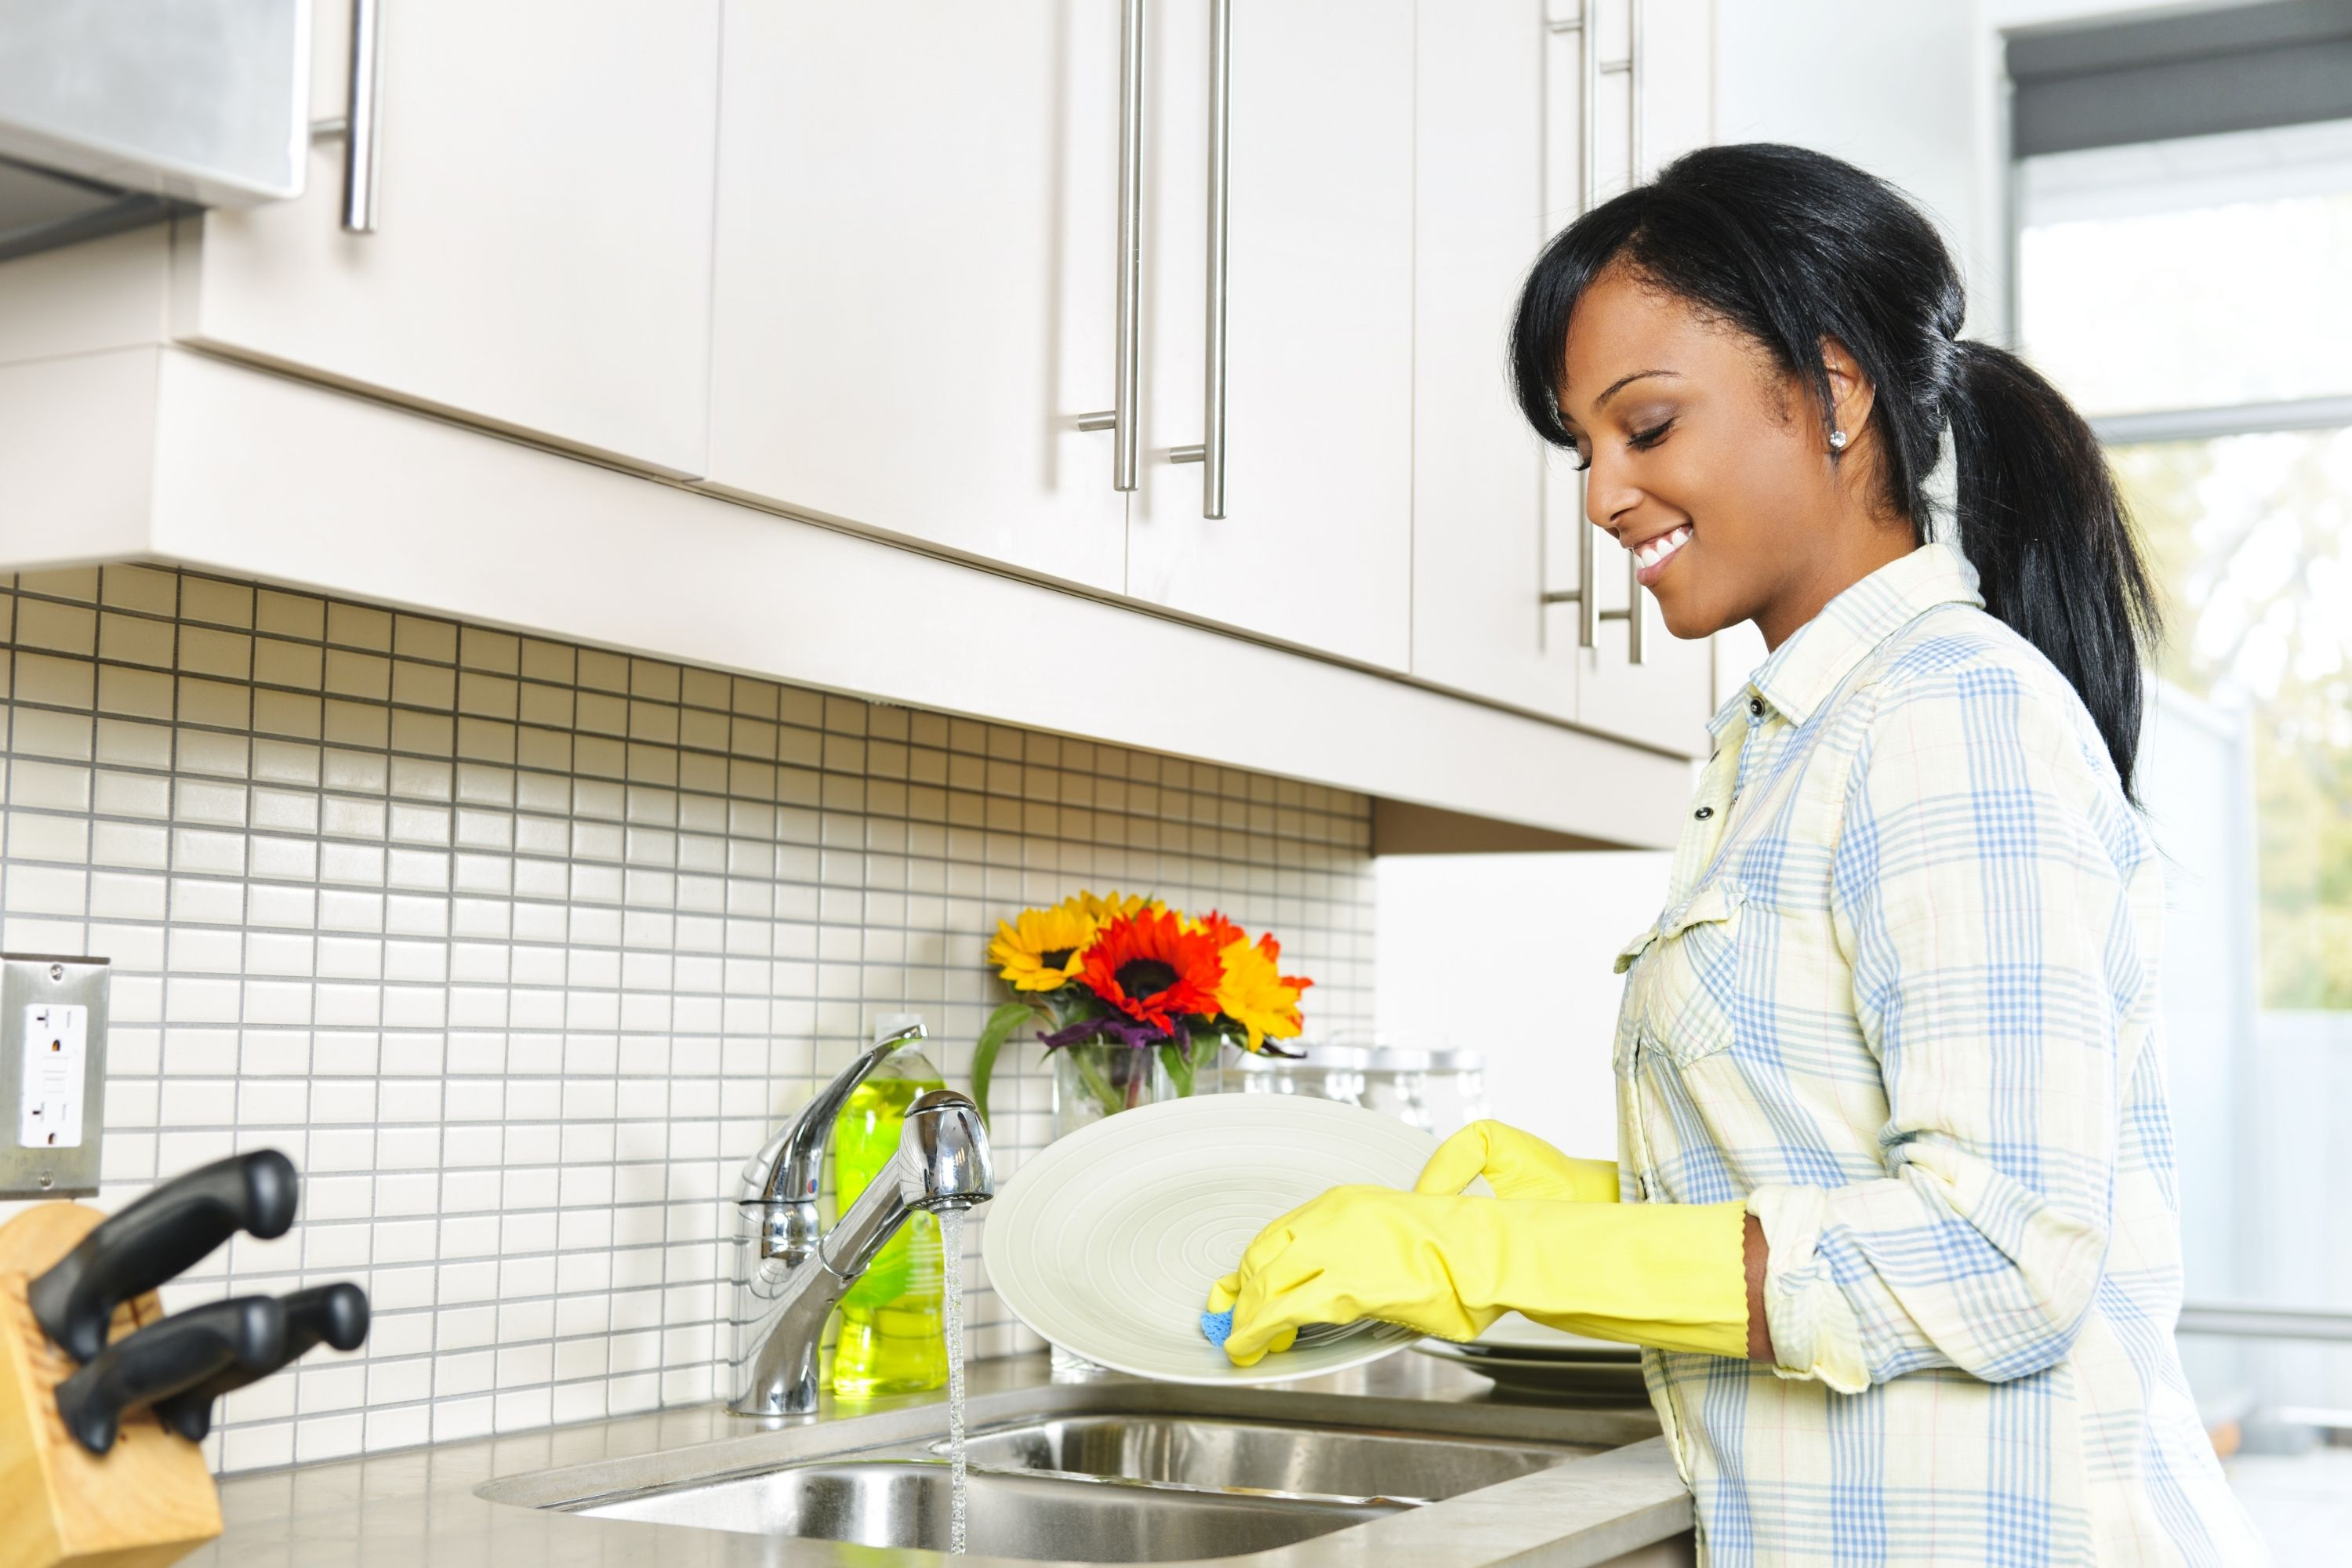 The Correct Order Of Steps For Cleaning And Sanitizing Utensils By Hand